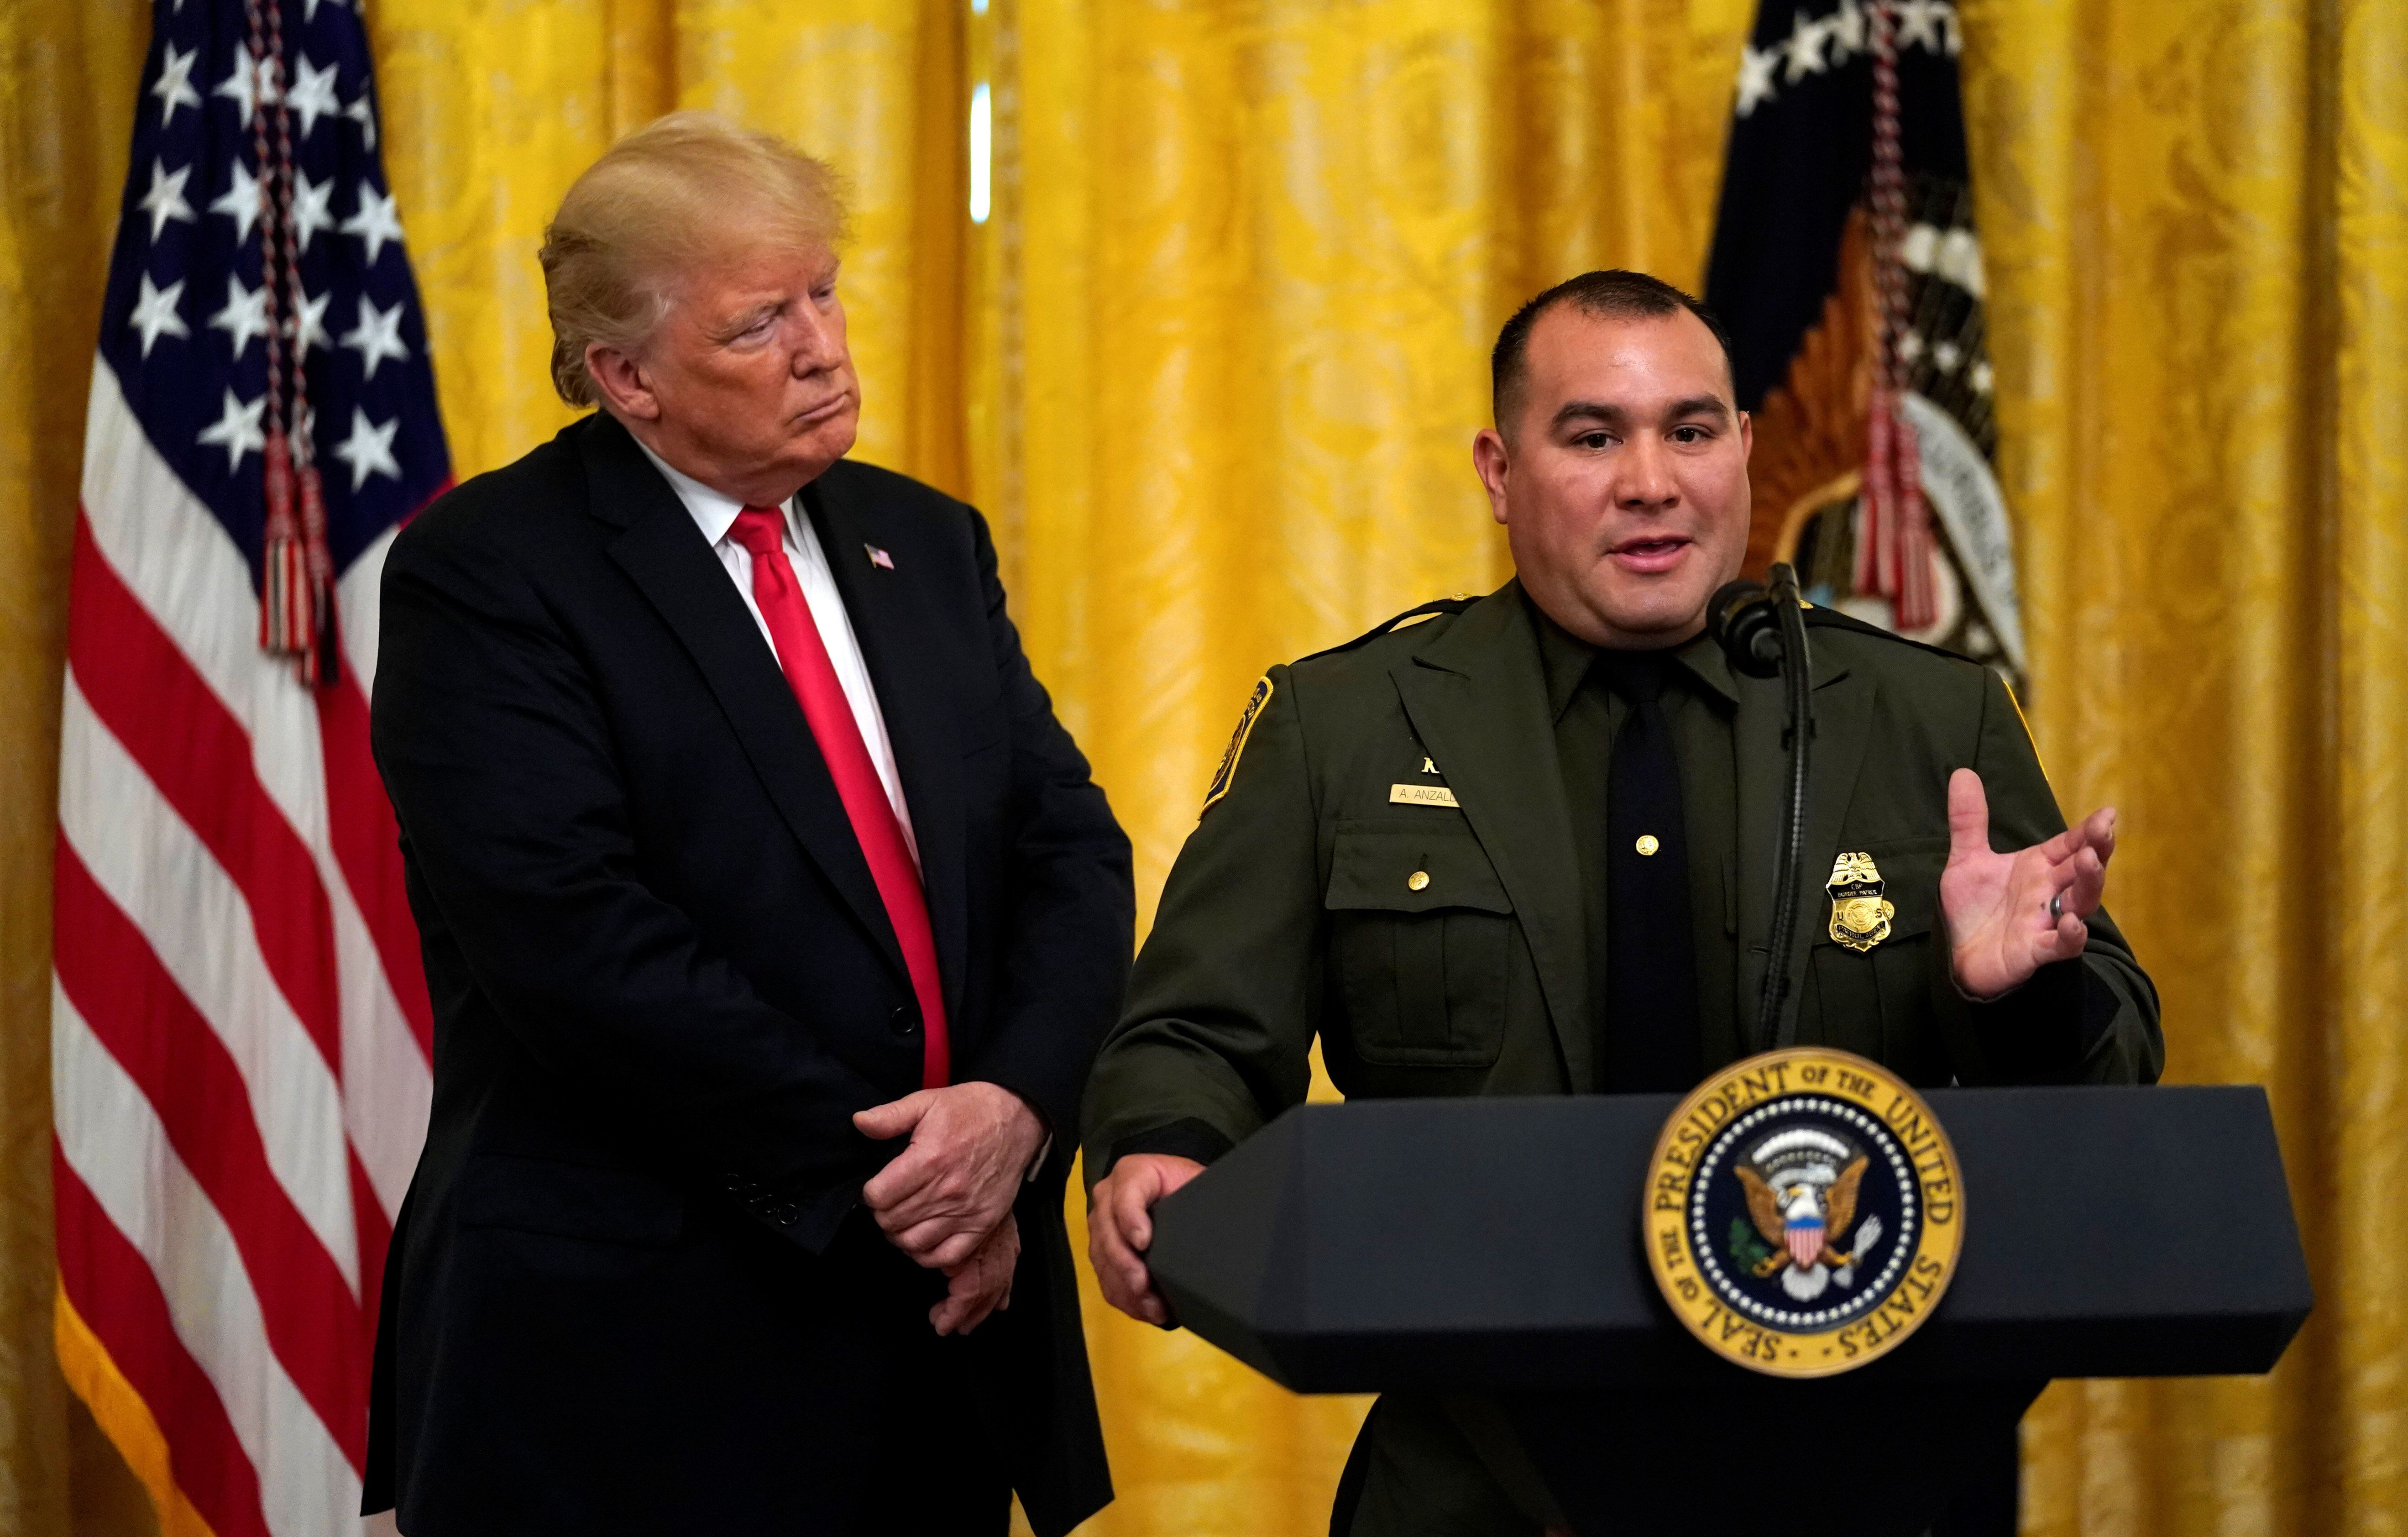 U.S. President Donald Trump listens to Border Patrol agent Adrian Anzaldua speak  during a Salute to the Heroes event at the White House in Washington, U.S., August 20, 2018.  REUTERS/Kevin Lamarque